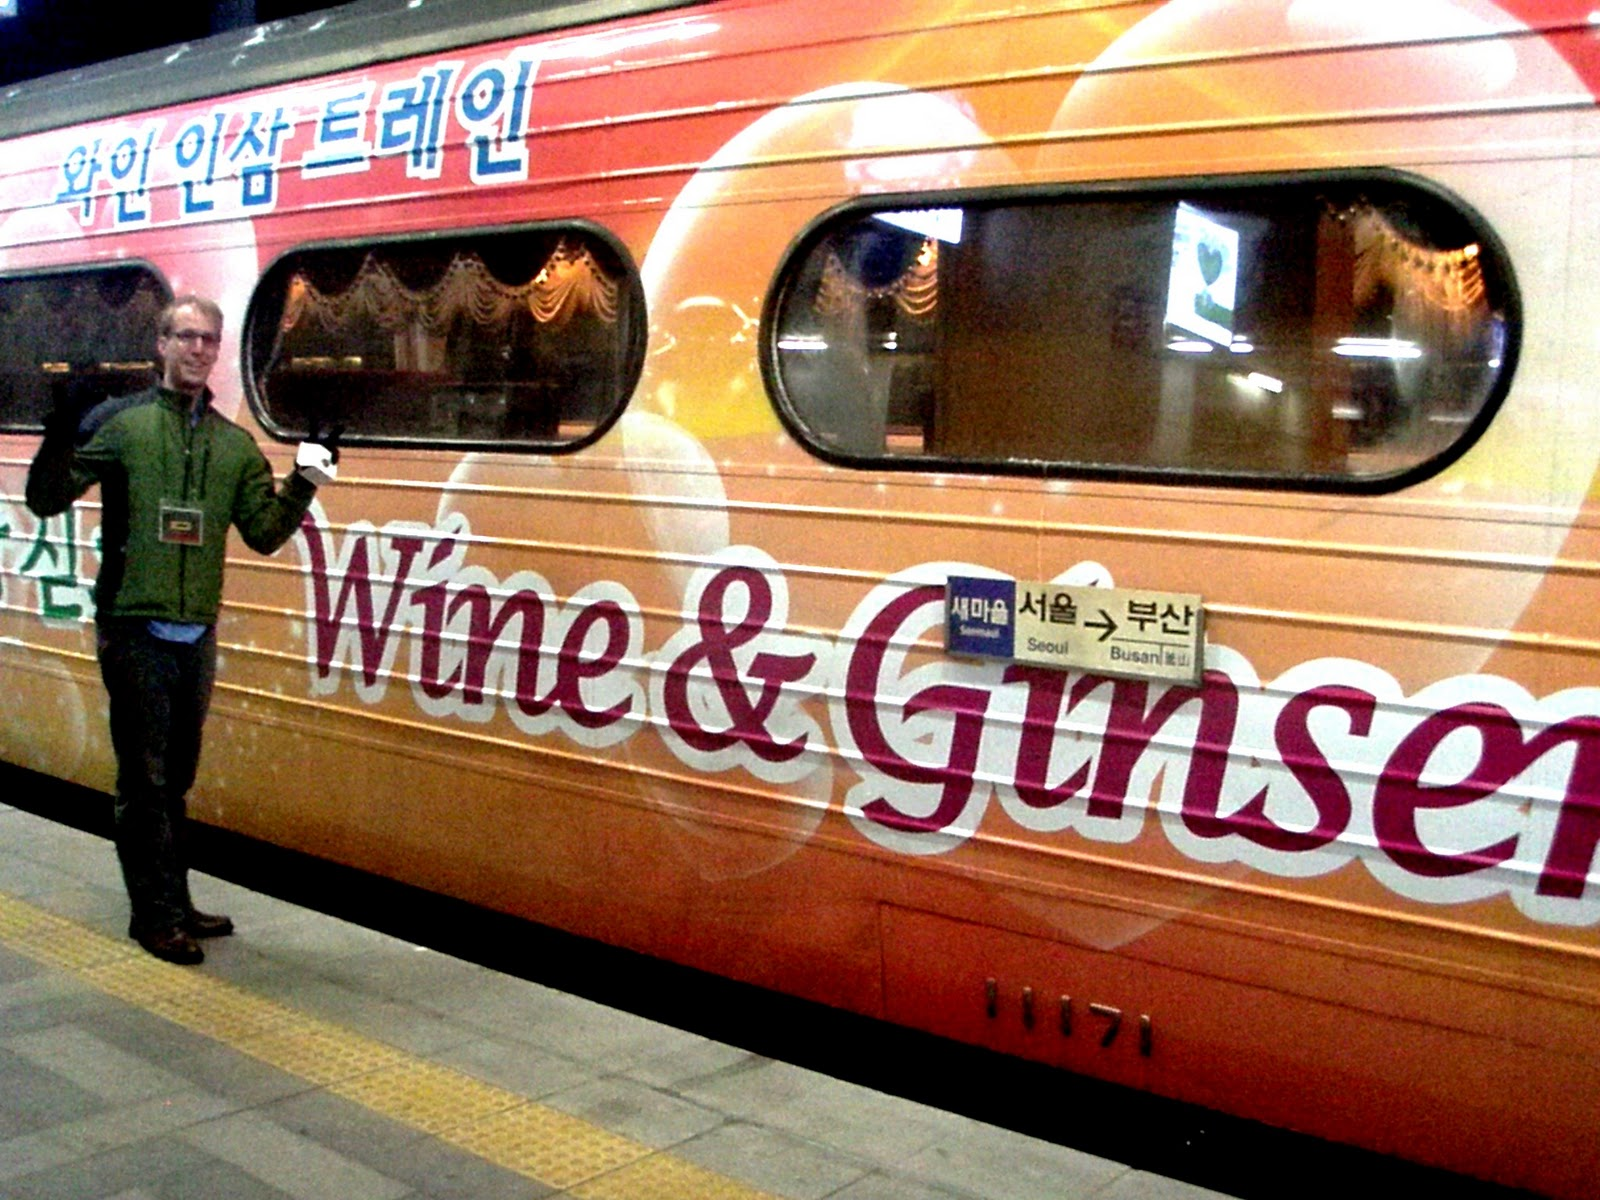 the korea wine train a photo essay gone seoul searching here are some of my favorite photos from the korea wine train if you are living in korea or are taking a trip this is an excellent all day adventure to